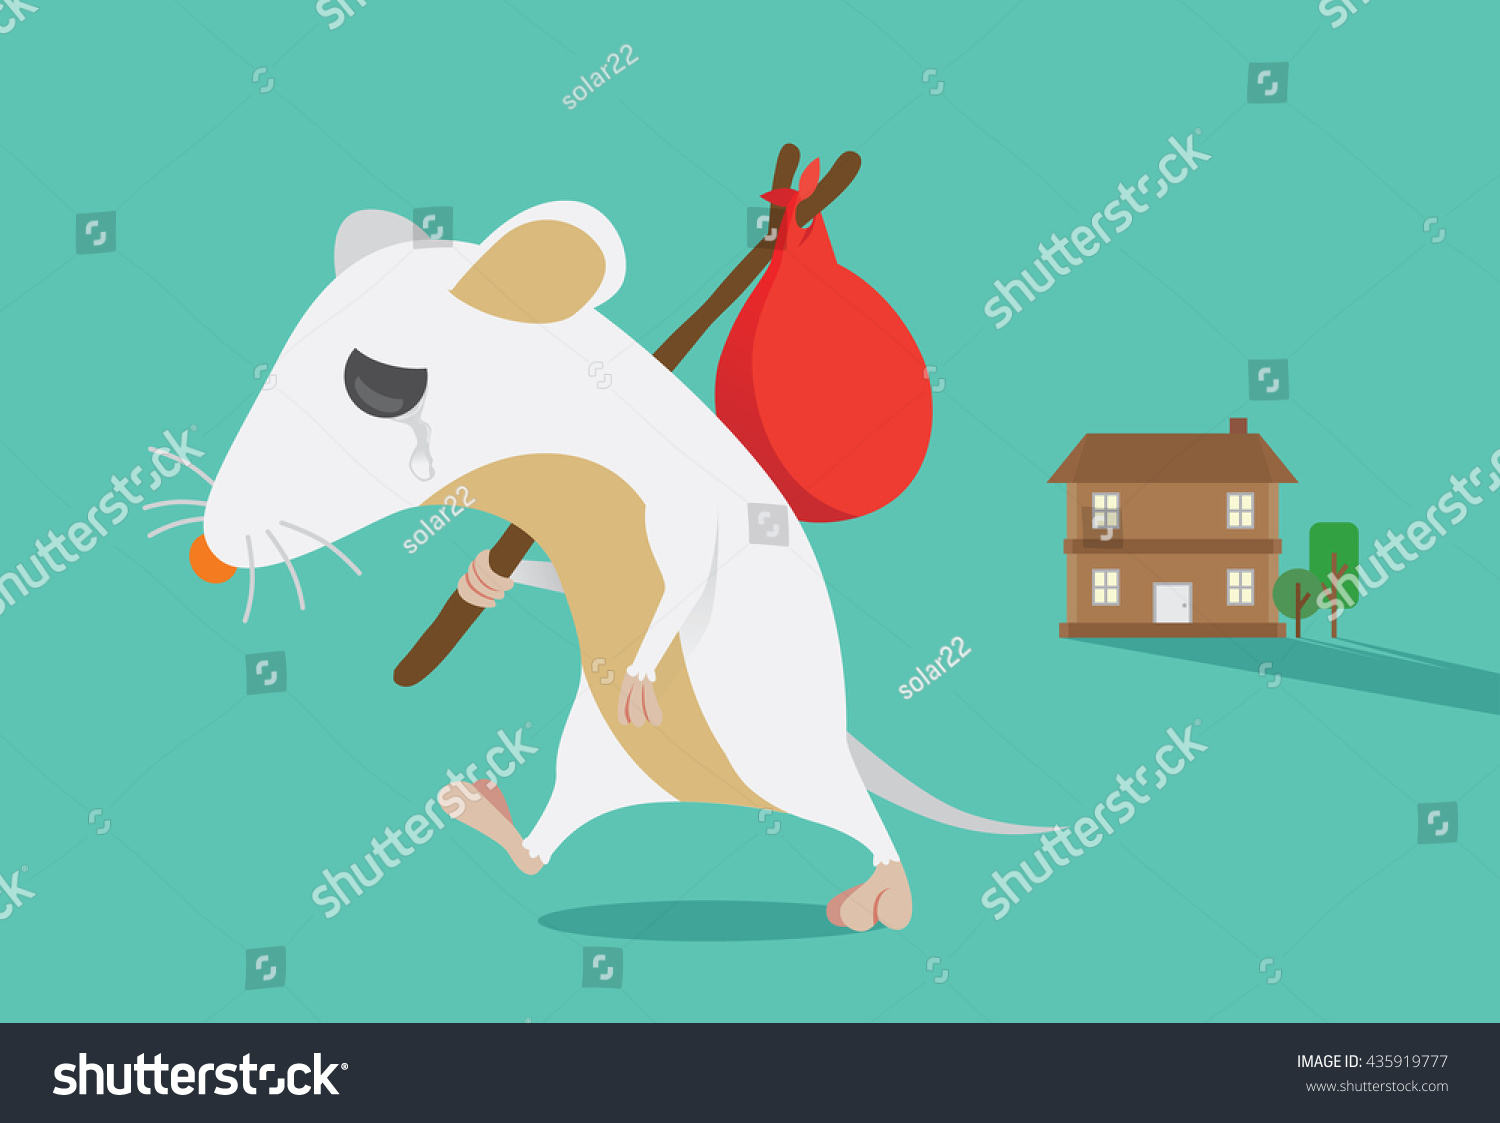 how to keep rats out of house